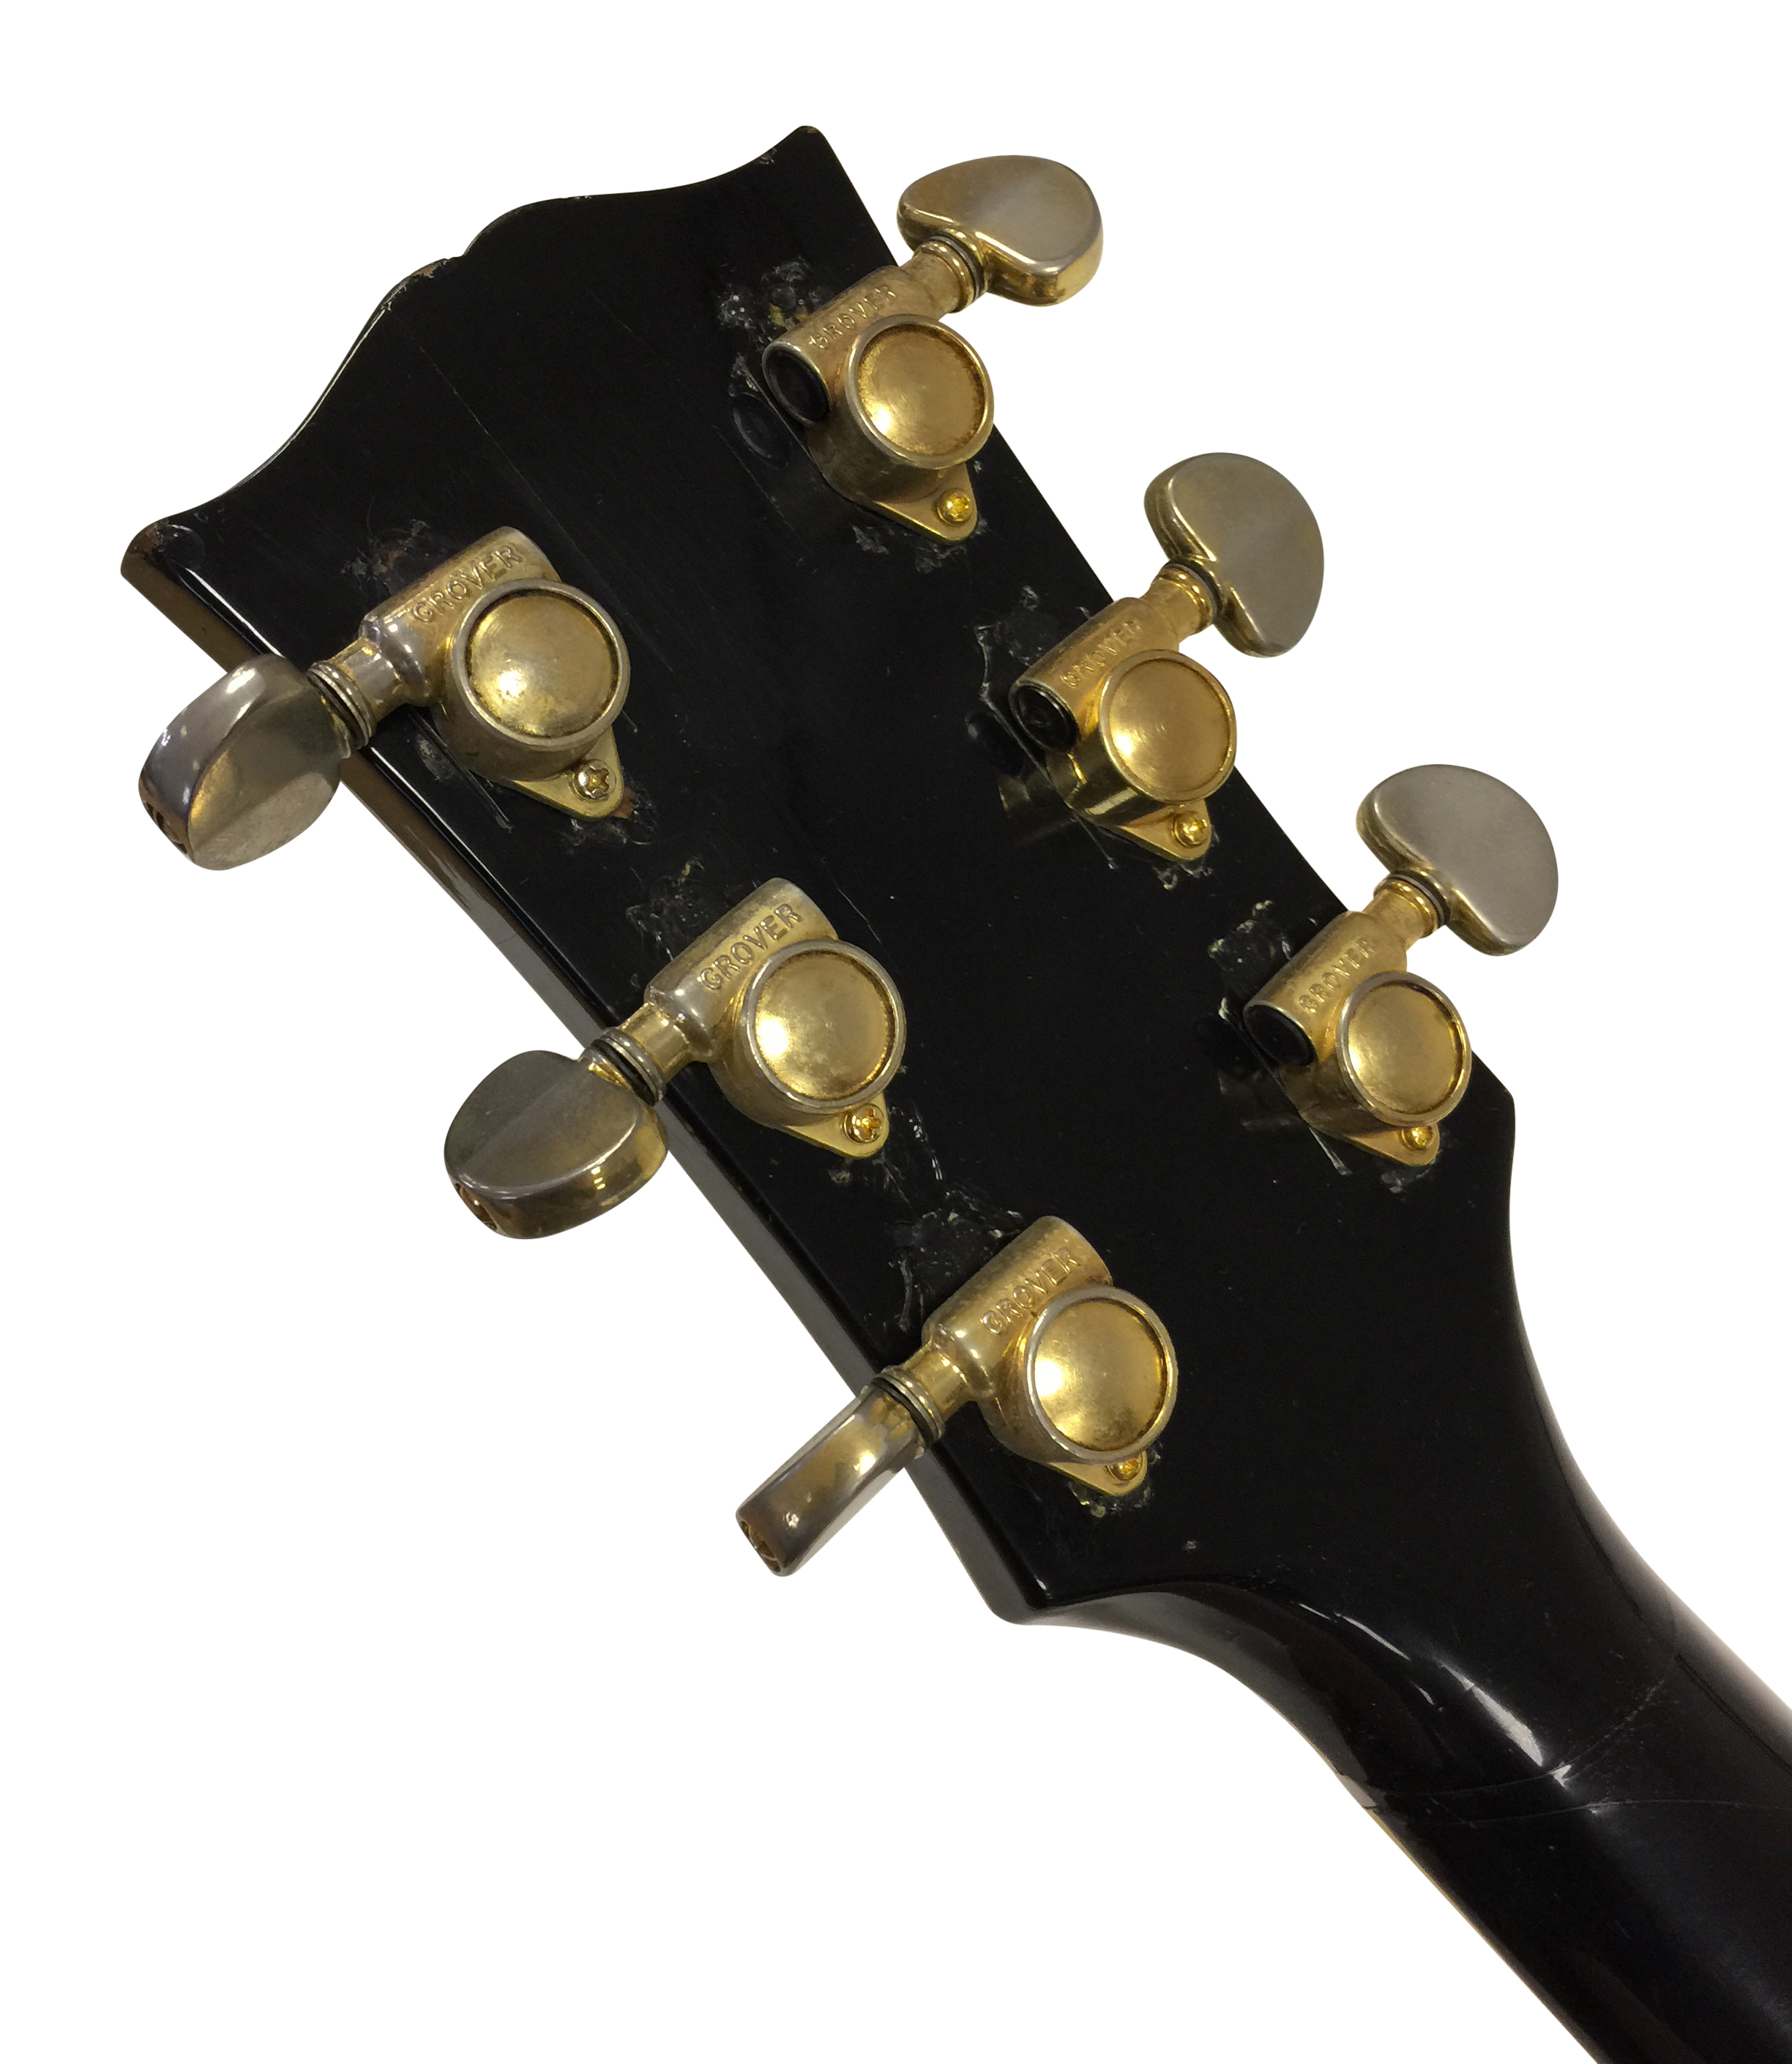 Lot 27 - GIBSON LES PAUL CUSTOM 1969 BLACK BEAUTY ELECTRIC GUITAR - OWNED BY BILLY DUFFY OF THE CULT.